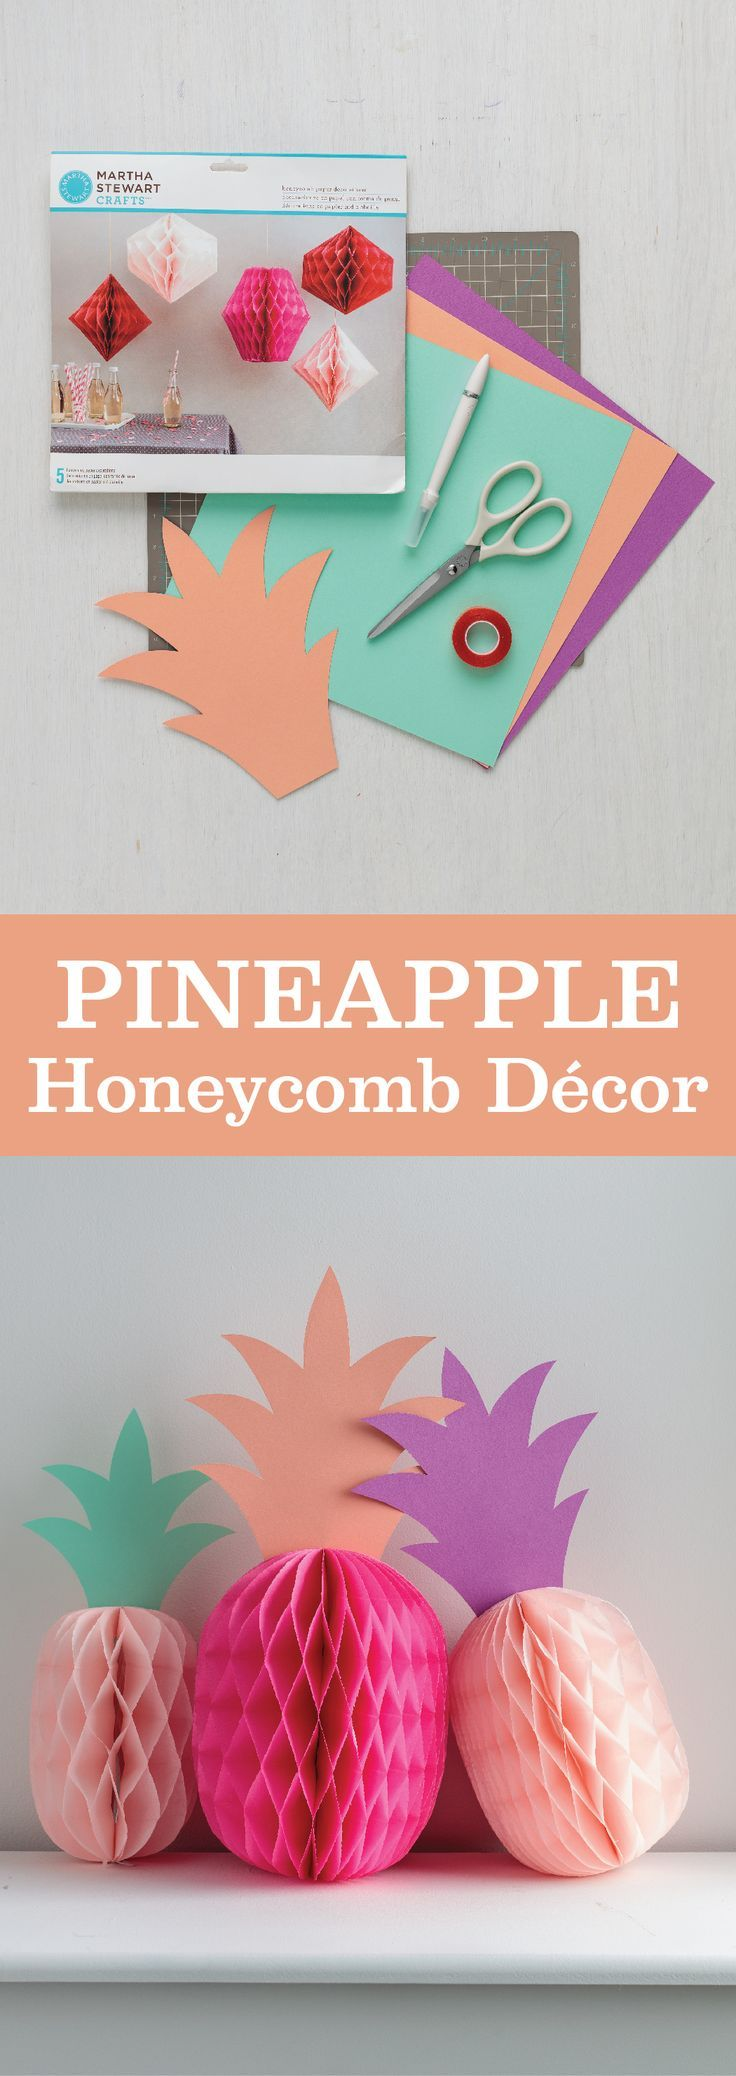 Enjoy decorating your home or party space for special occasions with the Martha Stewart Crafts Honeycomb Paper Decorations. This pack contains five dimensional honeycomb paper decorations in two diffe